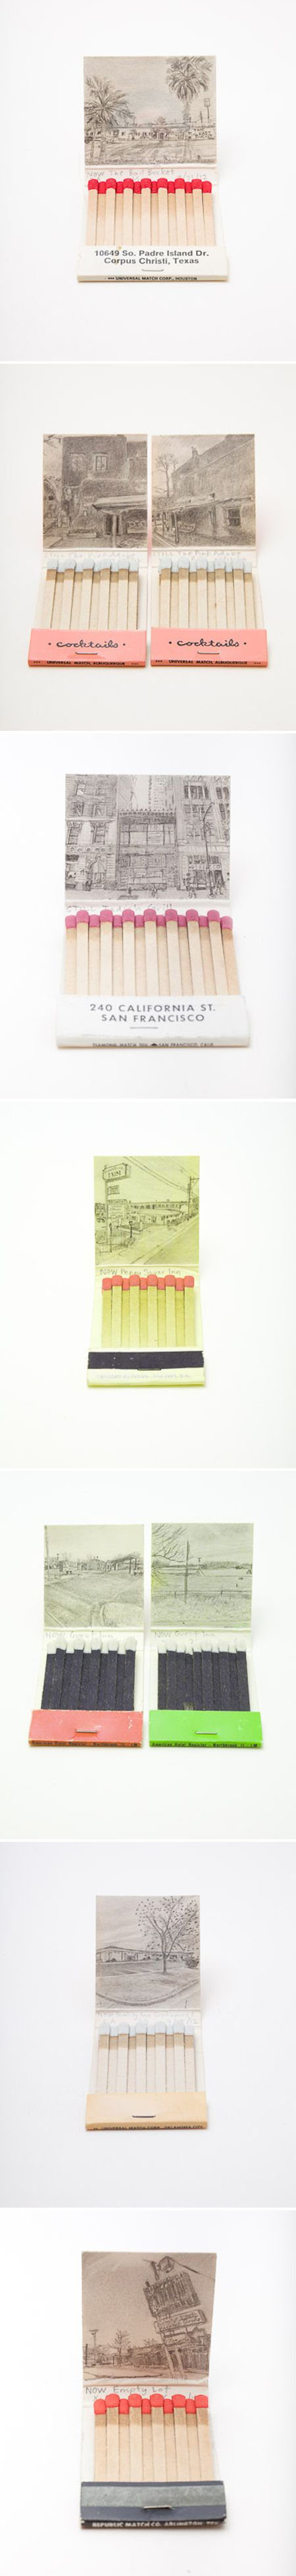 Matchbook drawings by Krista Charles { via @sfgirlbybay / victoria smith / victoria smith }